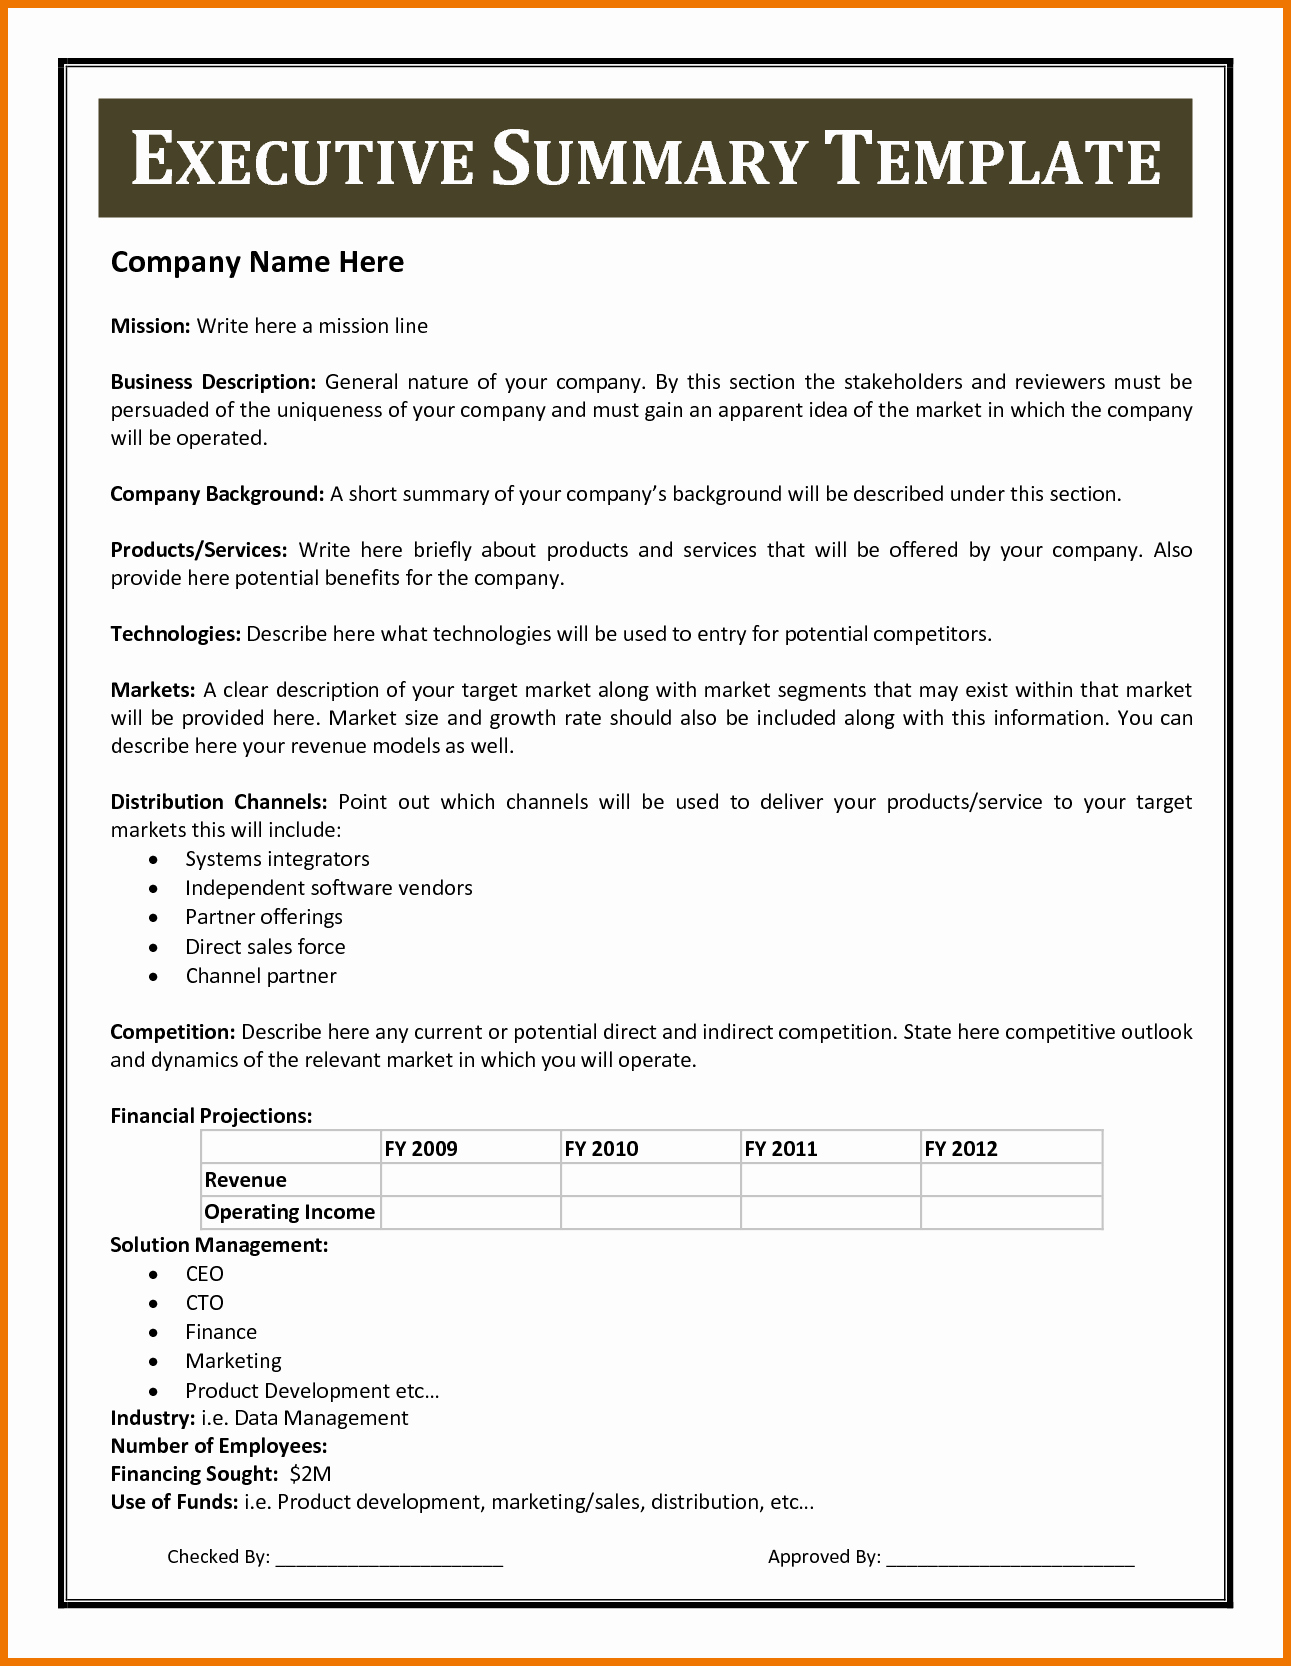 Samples Of Executive Summary Report Awesome Executive Report